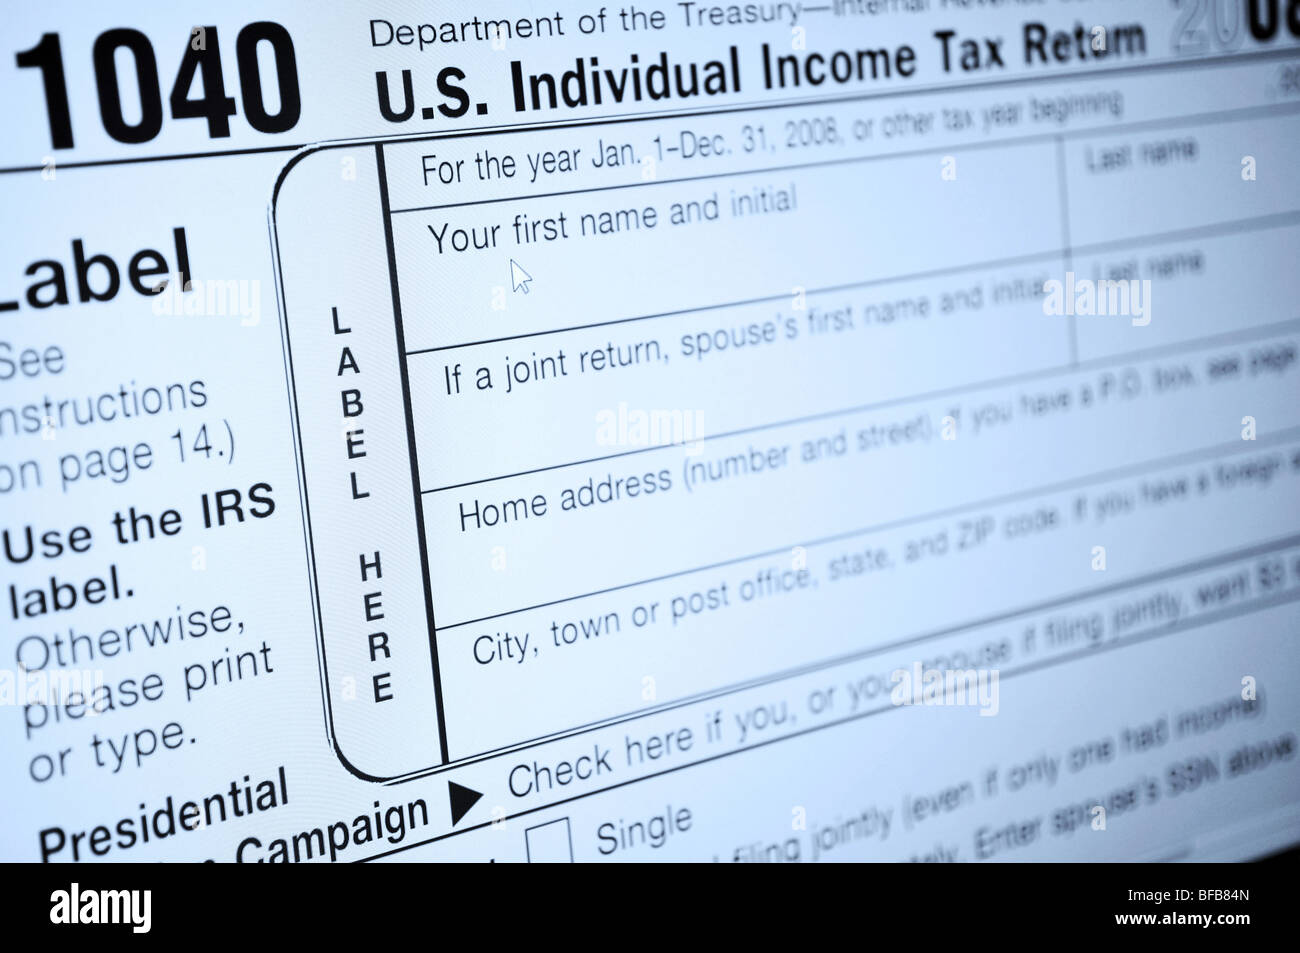 1040 Income Tax Forms Stock Photos 1040 Income Tax Forms Stock